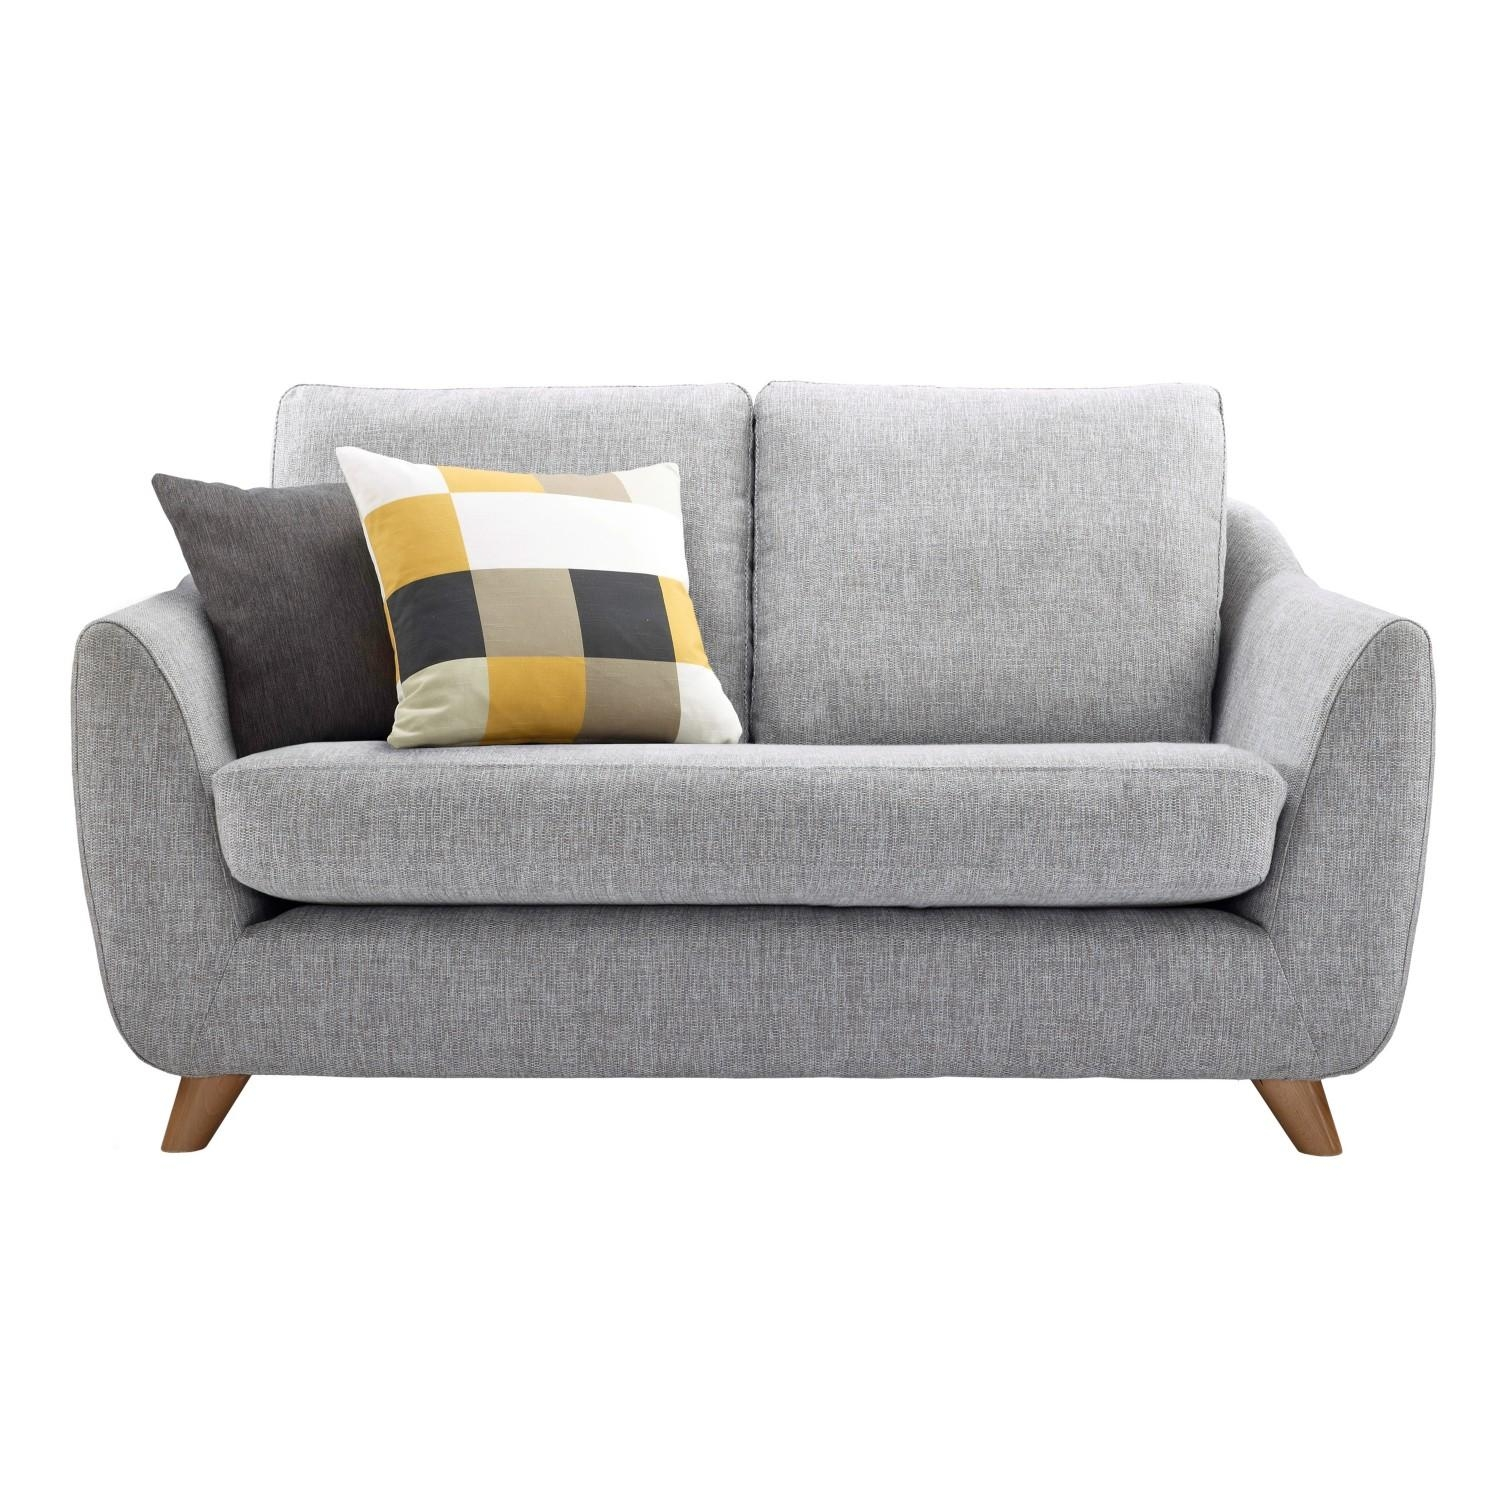 Furniture: Interior Modern Sofa Bed Cute Sofas Design Interior With Commercial Sofas (Image 7 of 20)